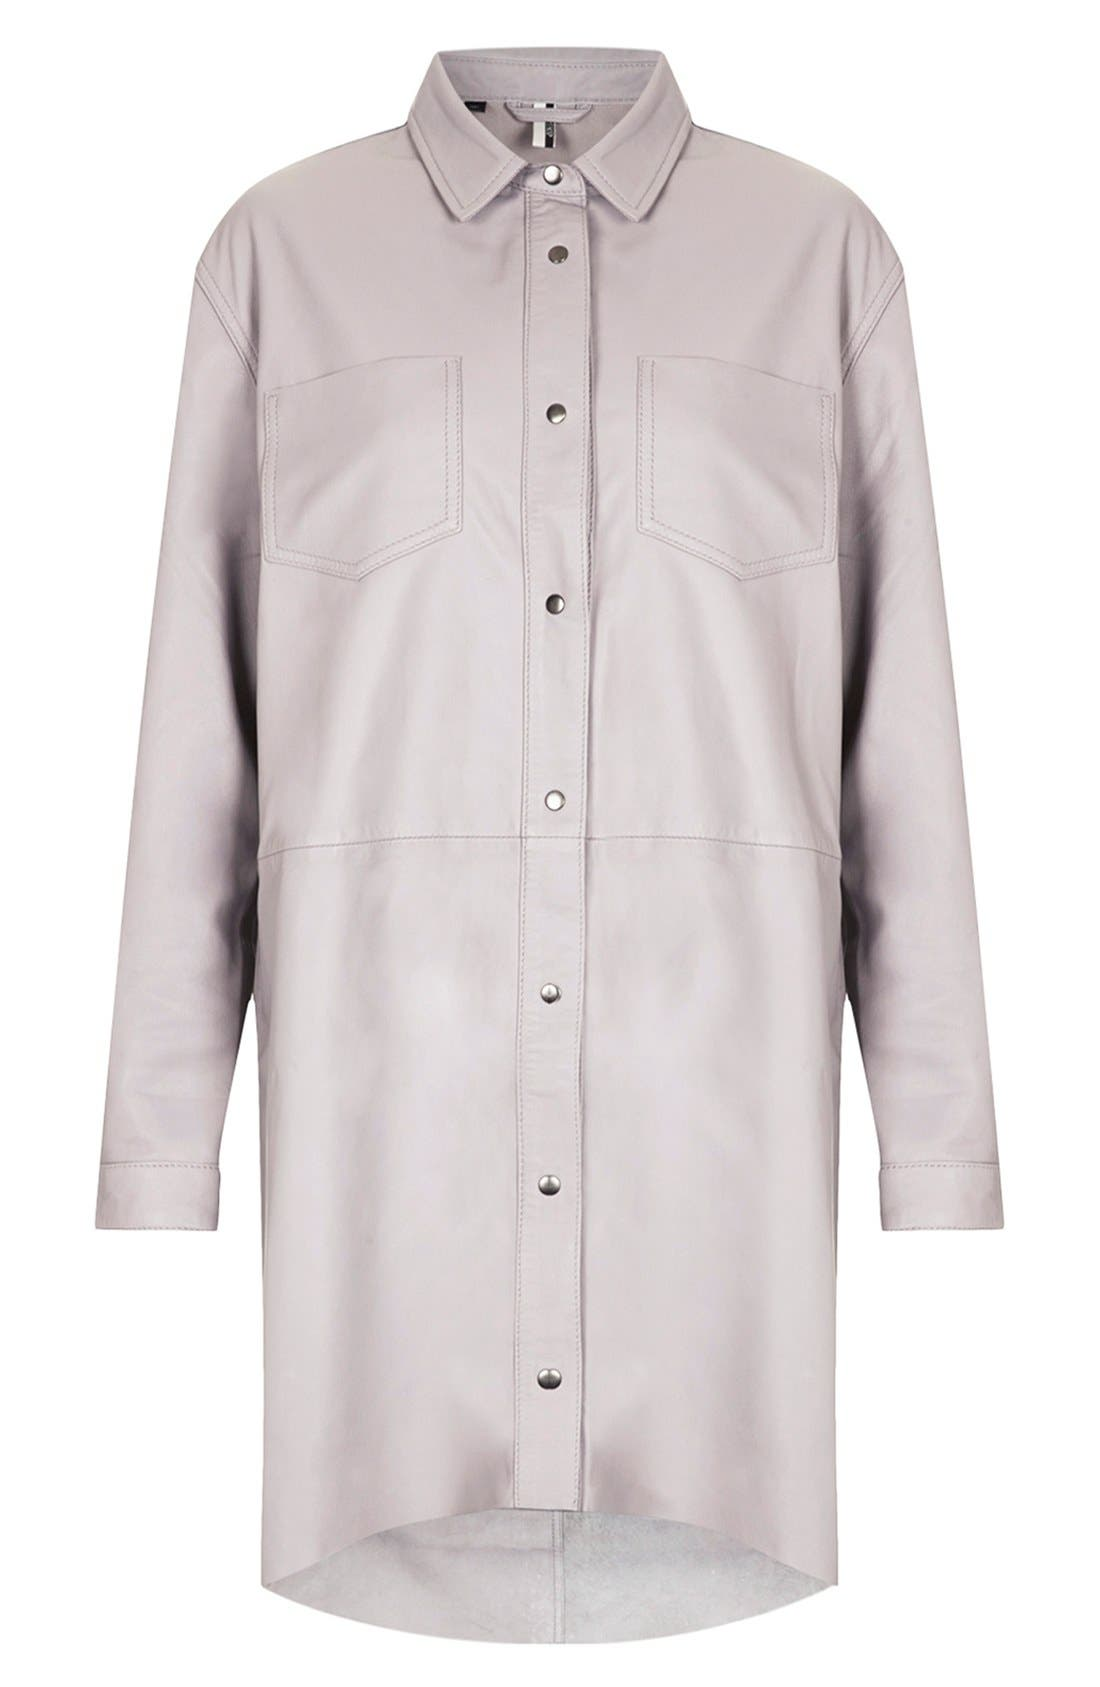 Main Image - Topshop 'The Collection Starring Kate Bosworth' Leather Shirtdress